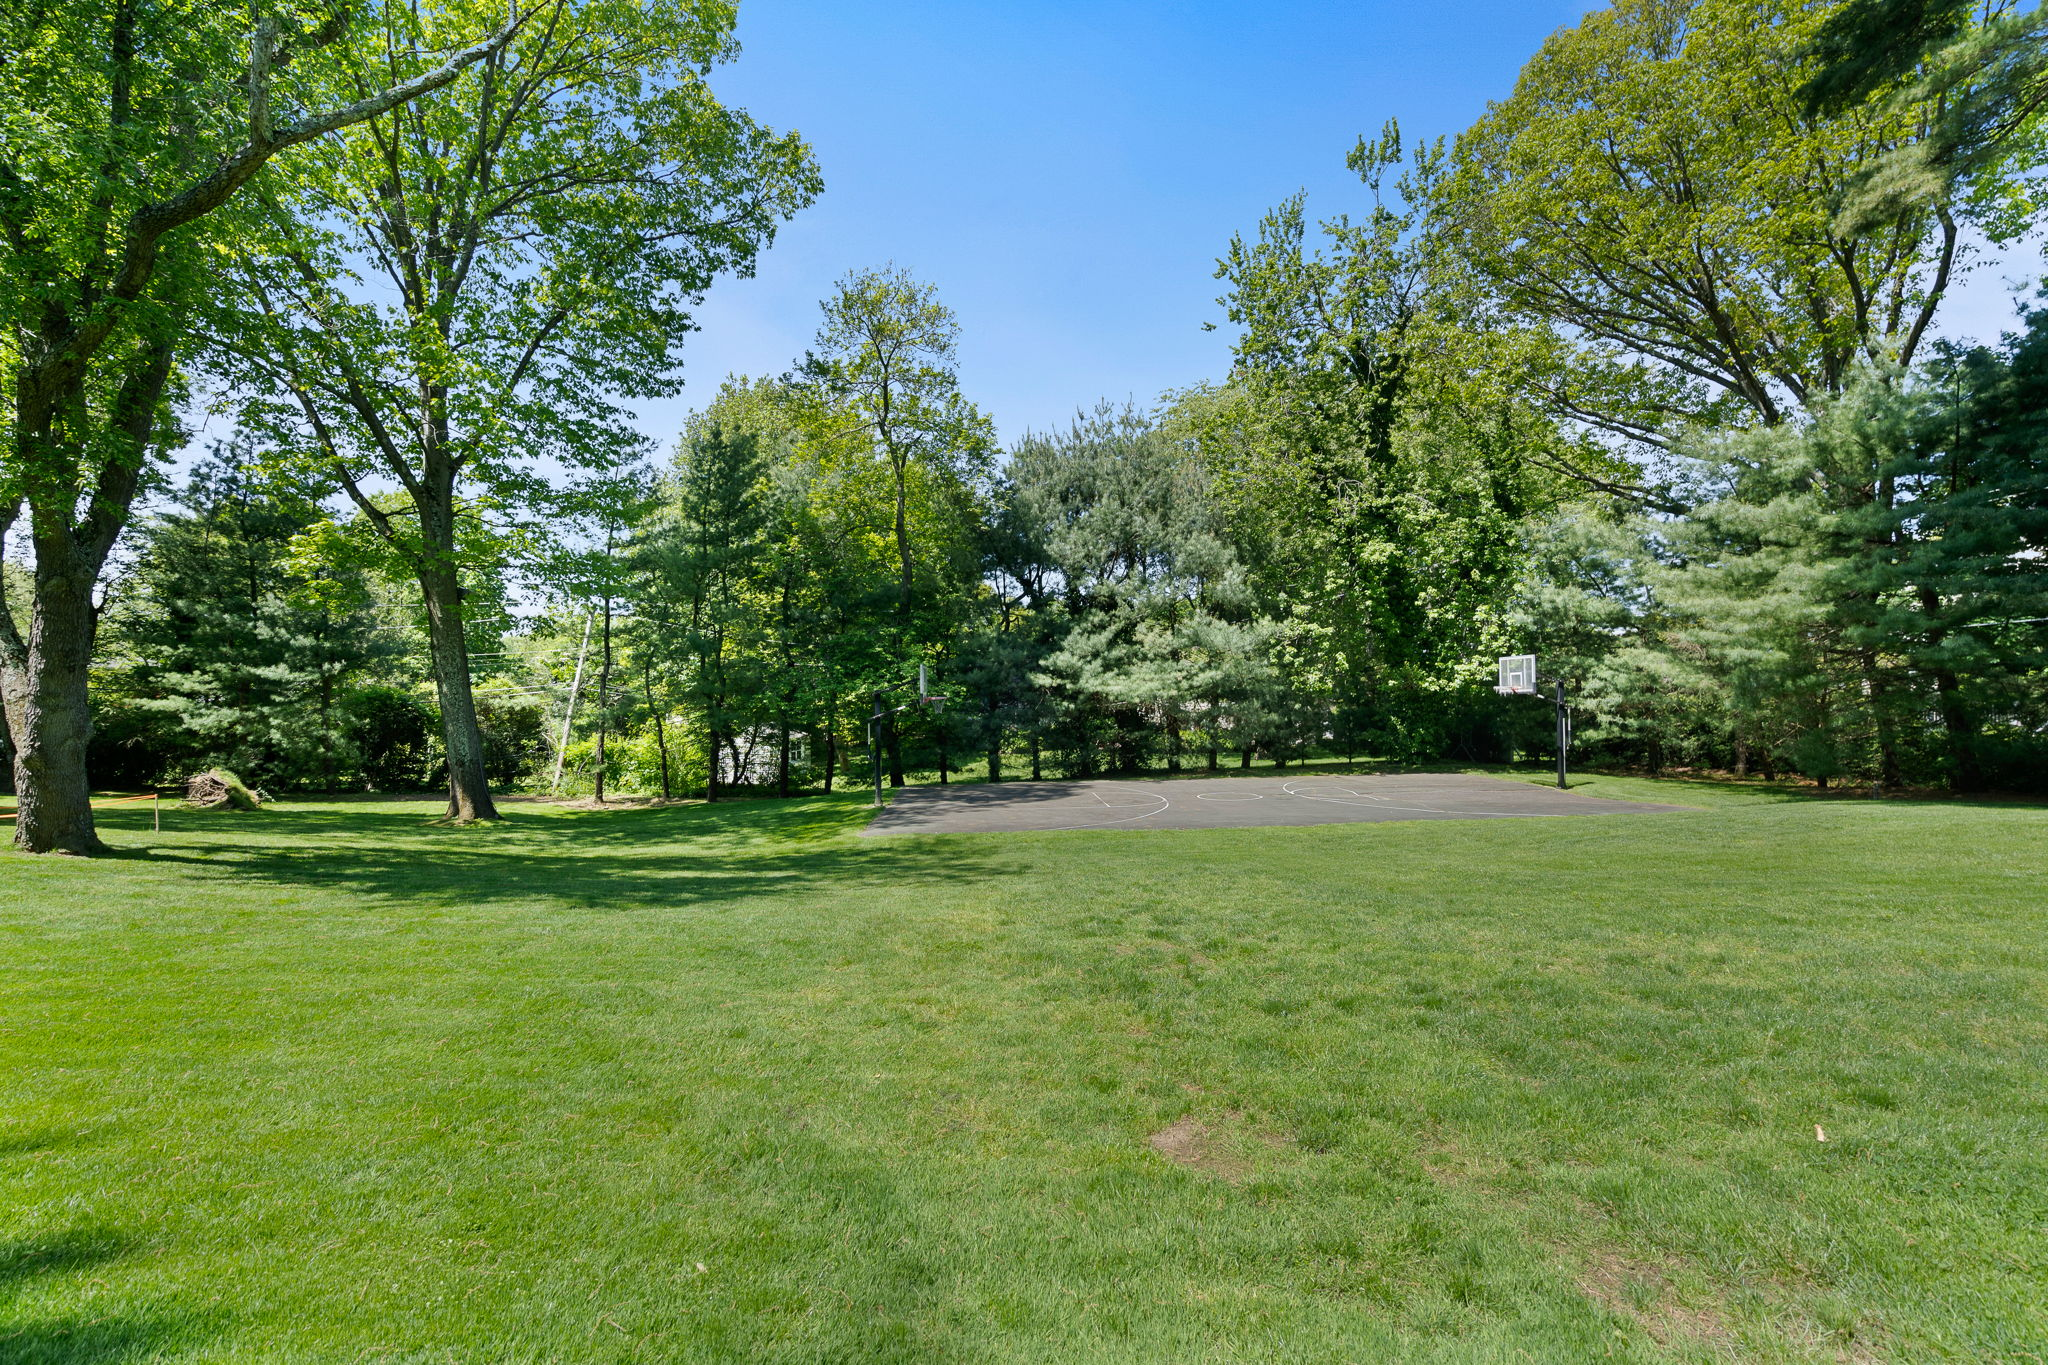 2a Melby Ln, East Hills, NY 11576, US Photo 96